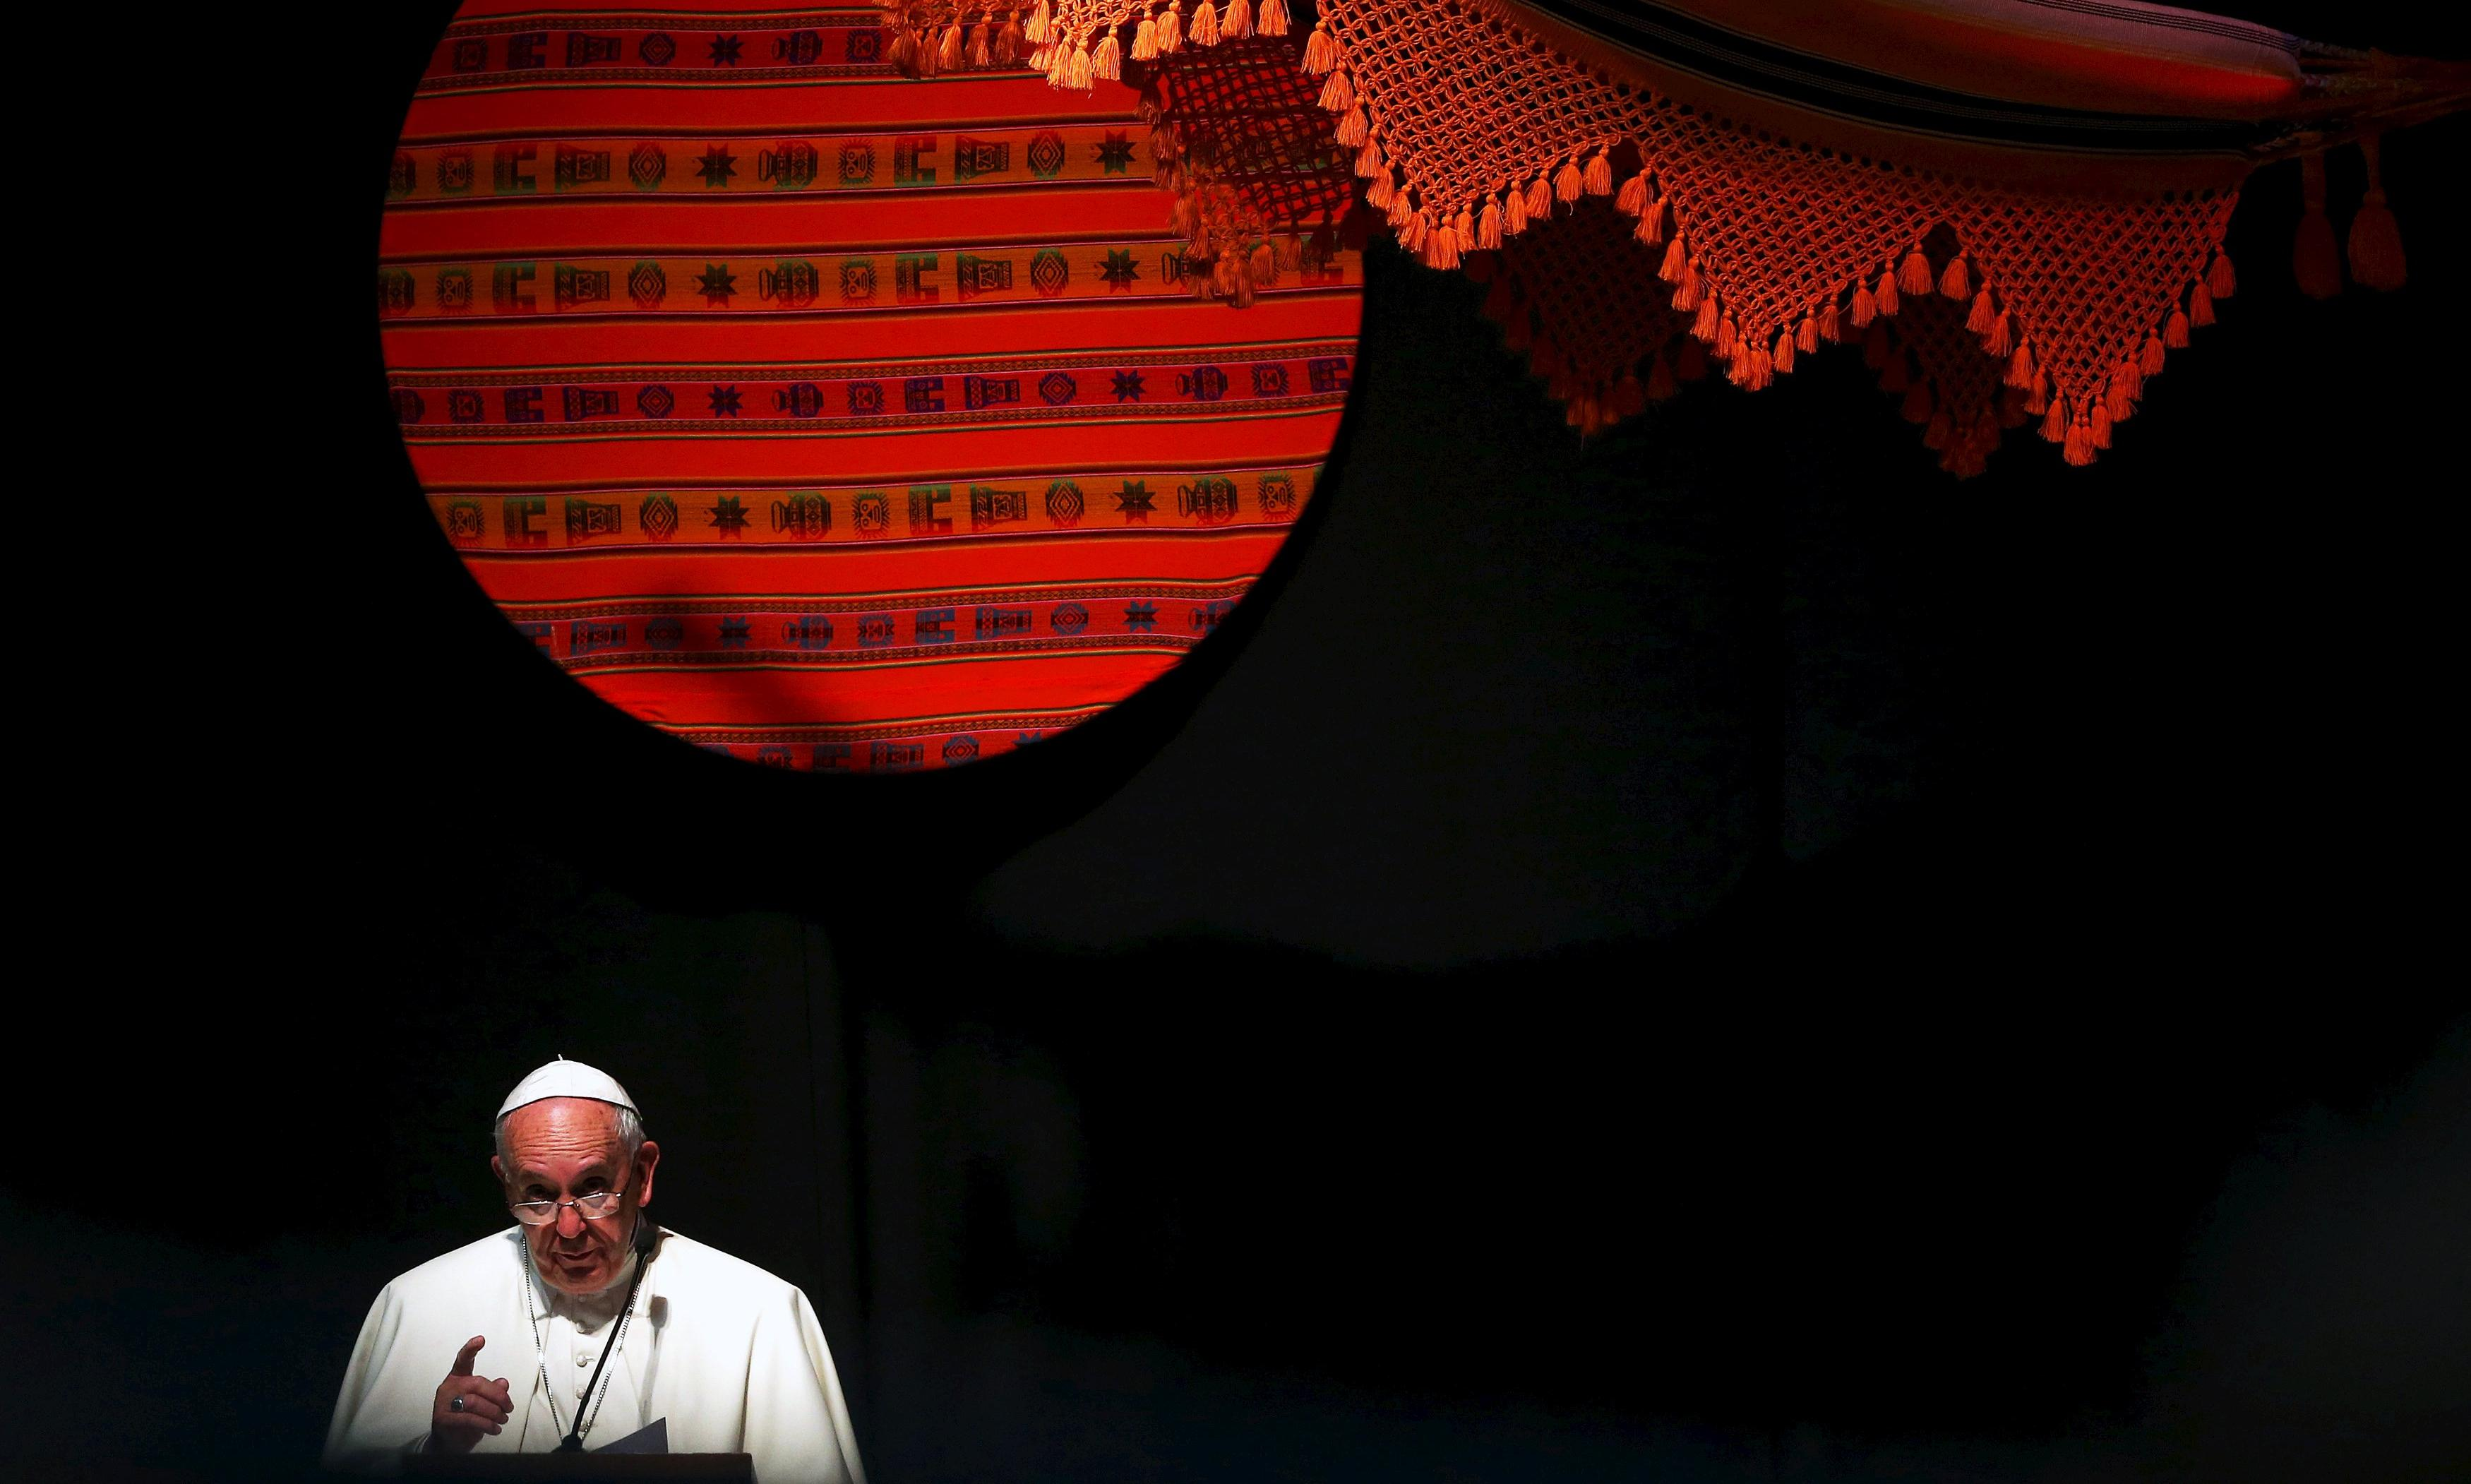 Unbridled capitalism is the 'dung of the devil', says Pope Francis